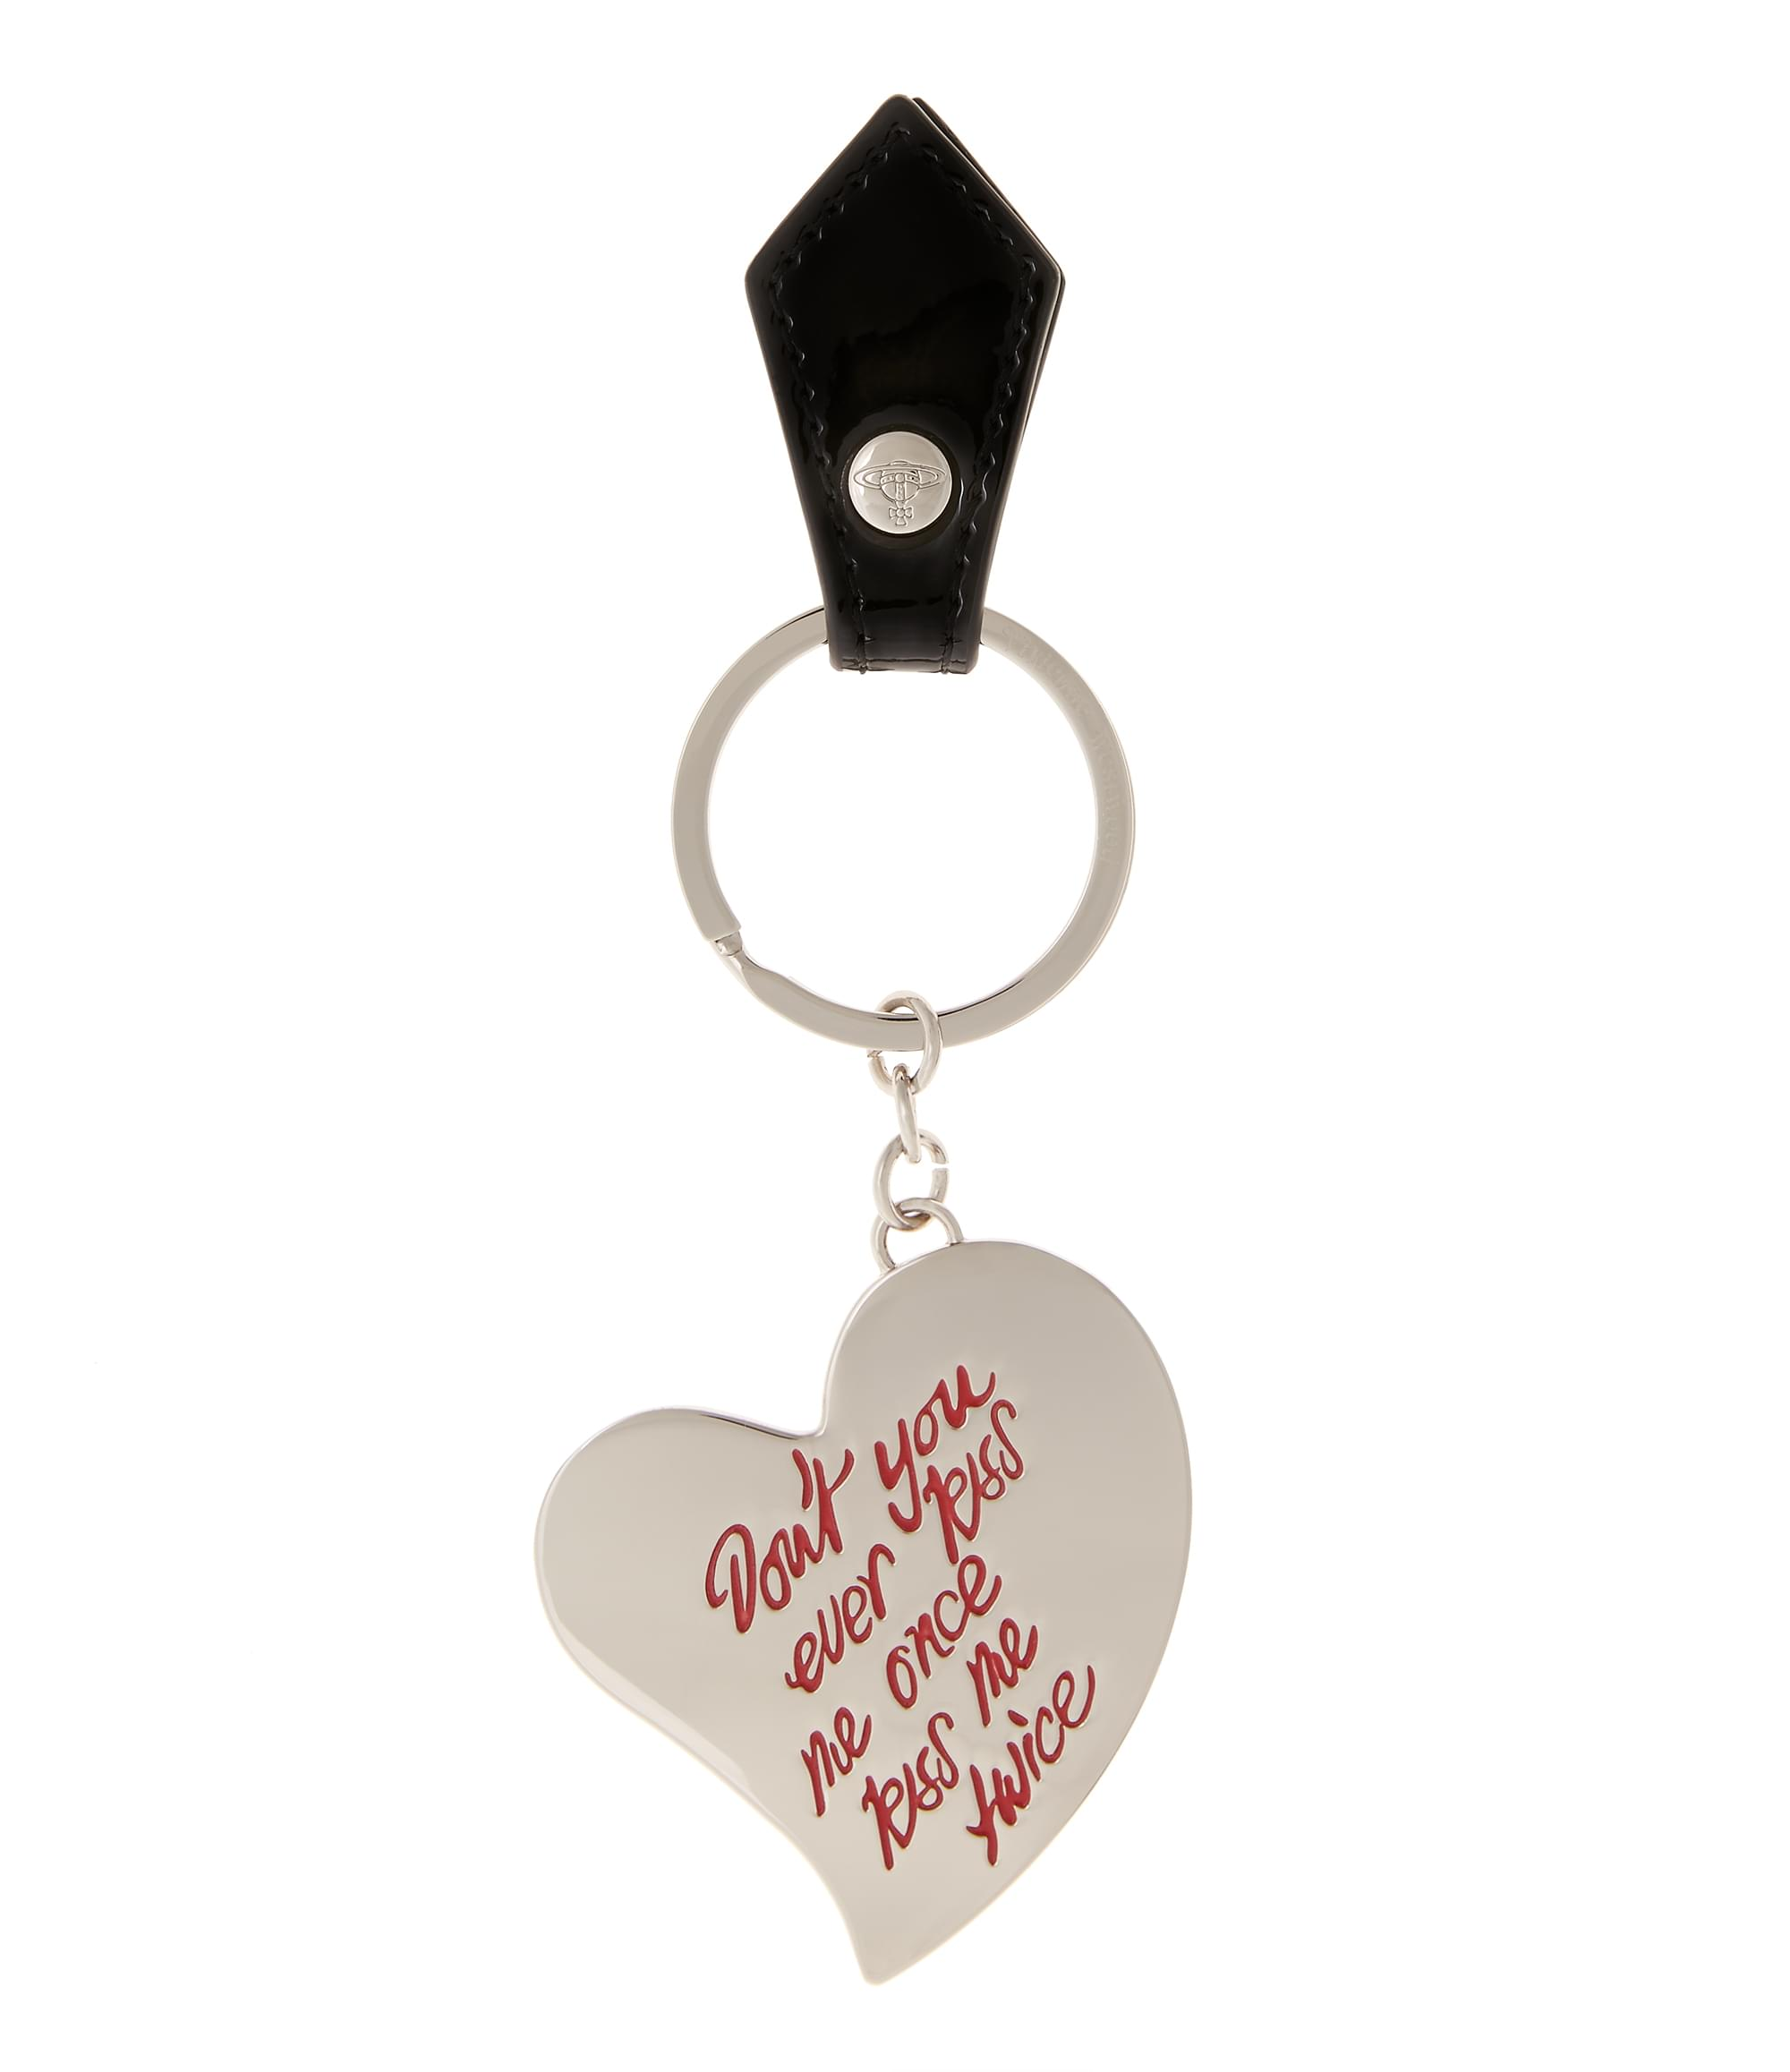 Vivienne Westwood Heart Key Ring 390070 Black